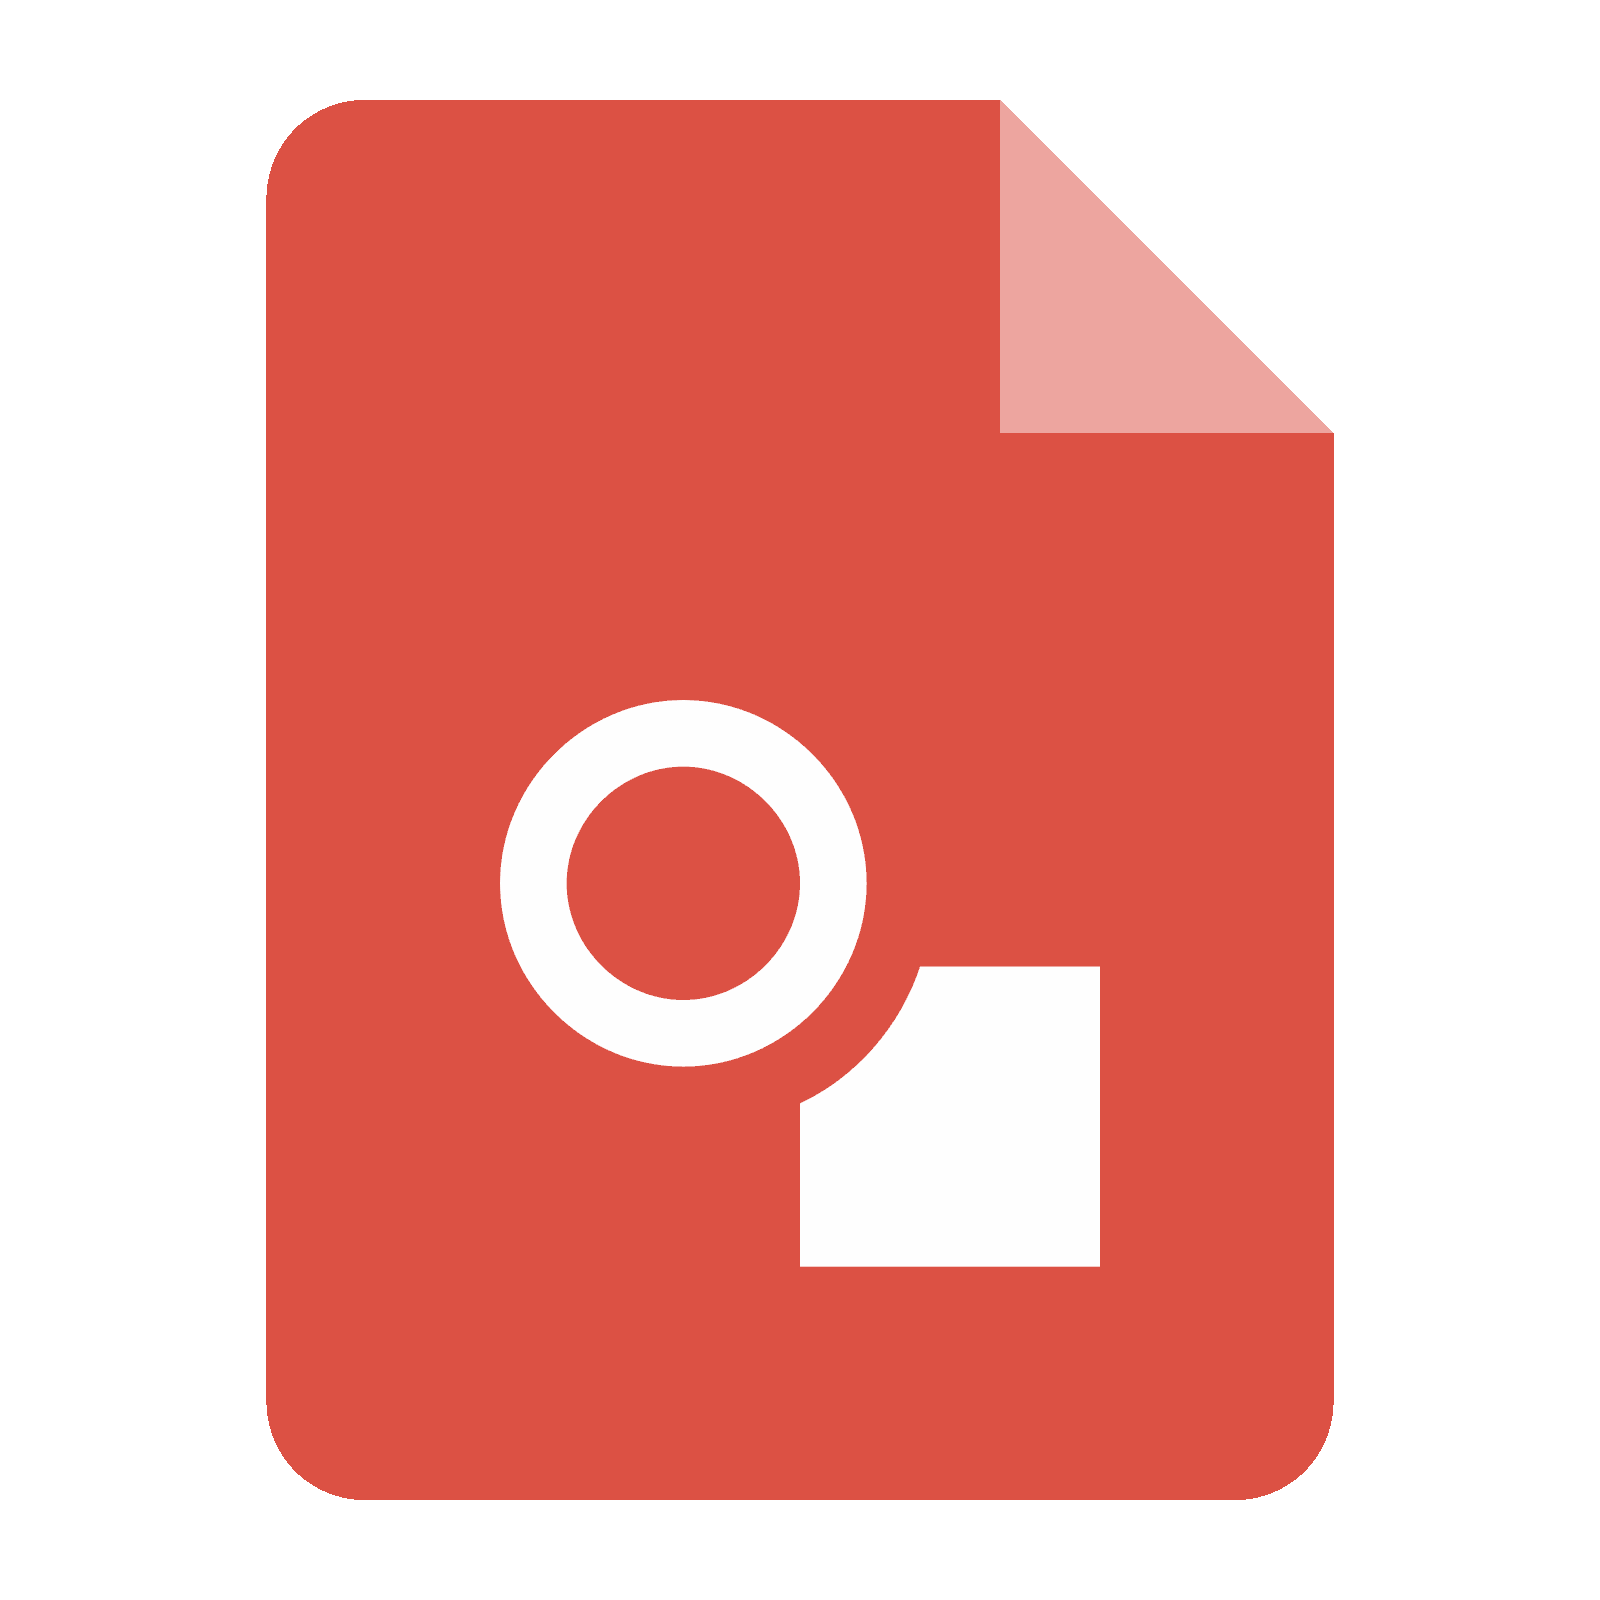 Gogole drawing. Google icon free download